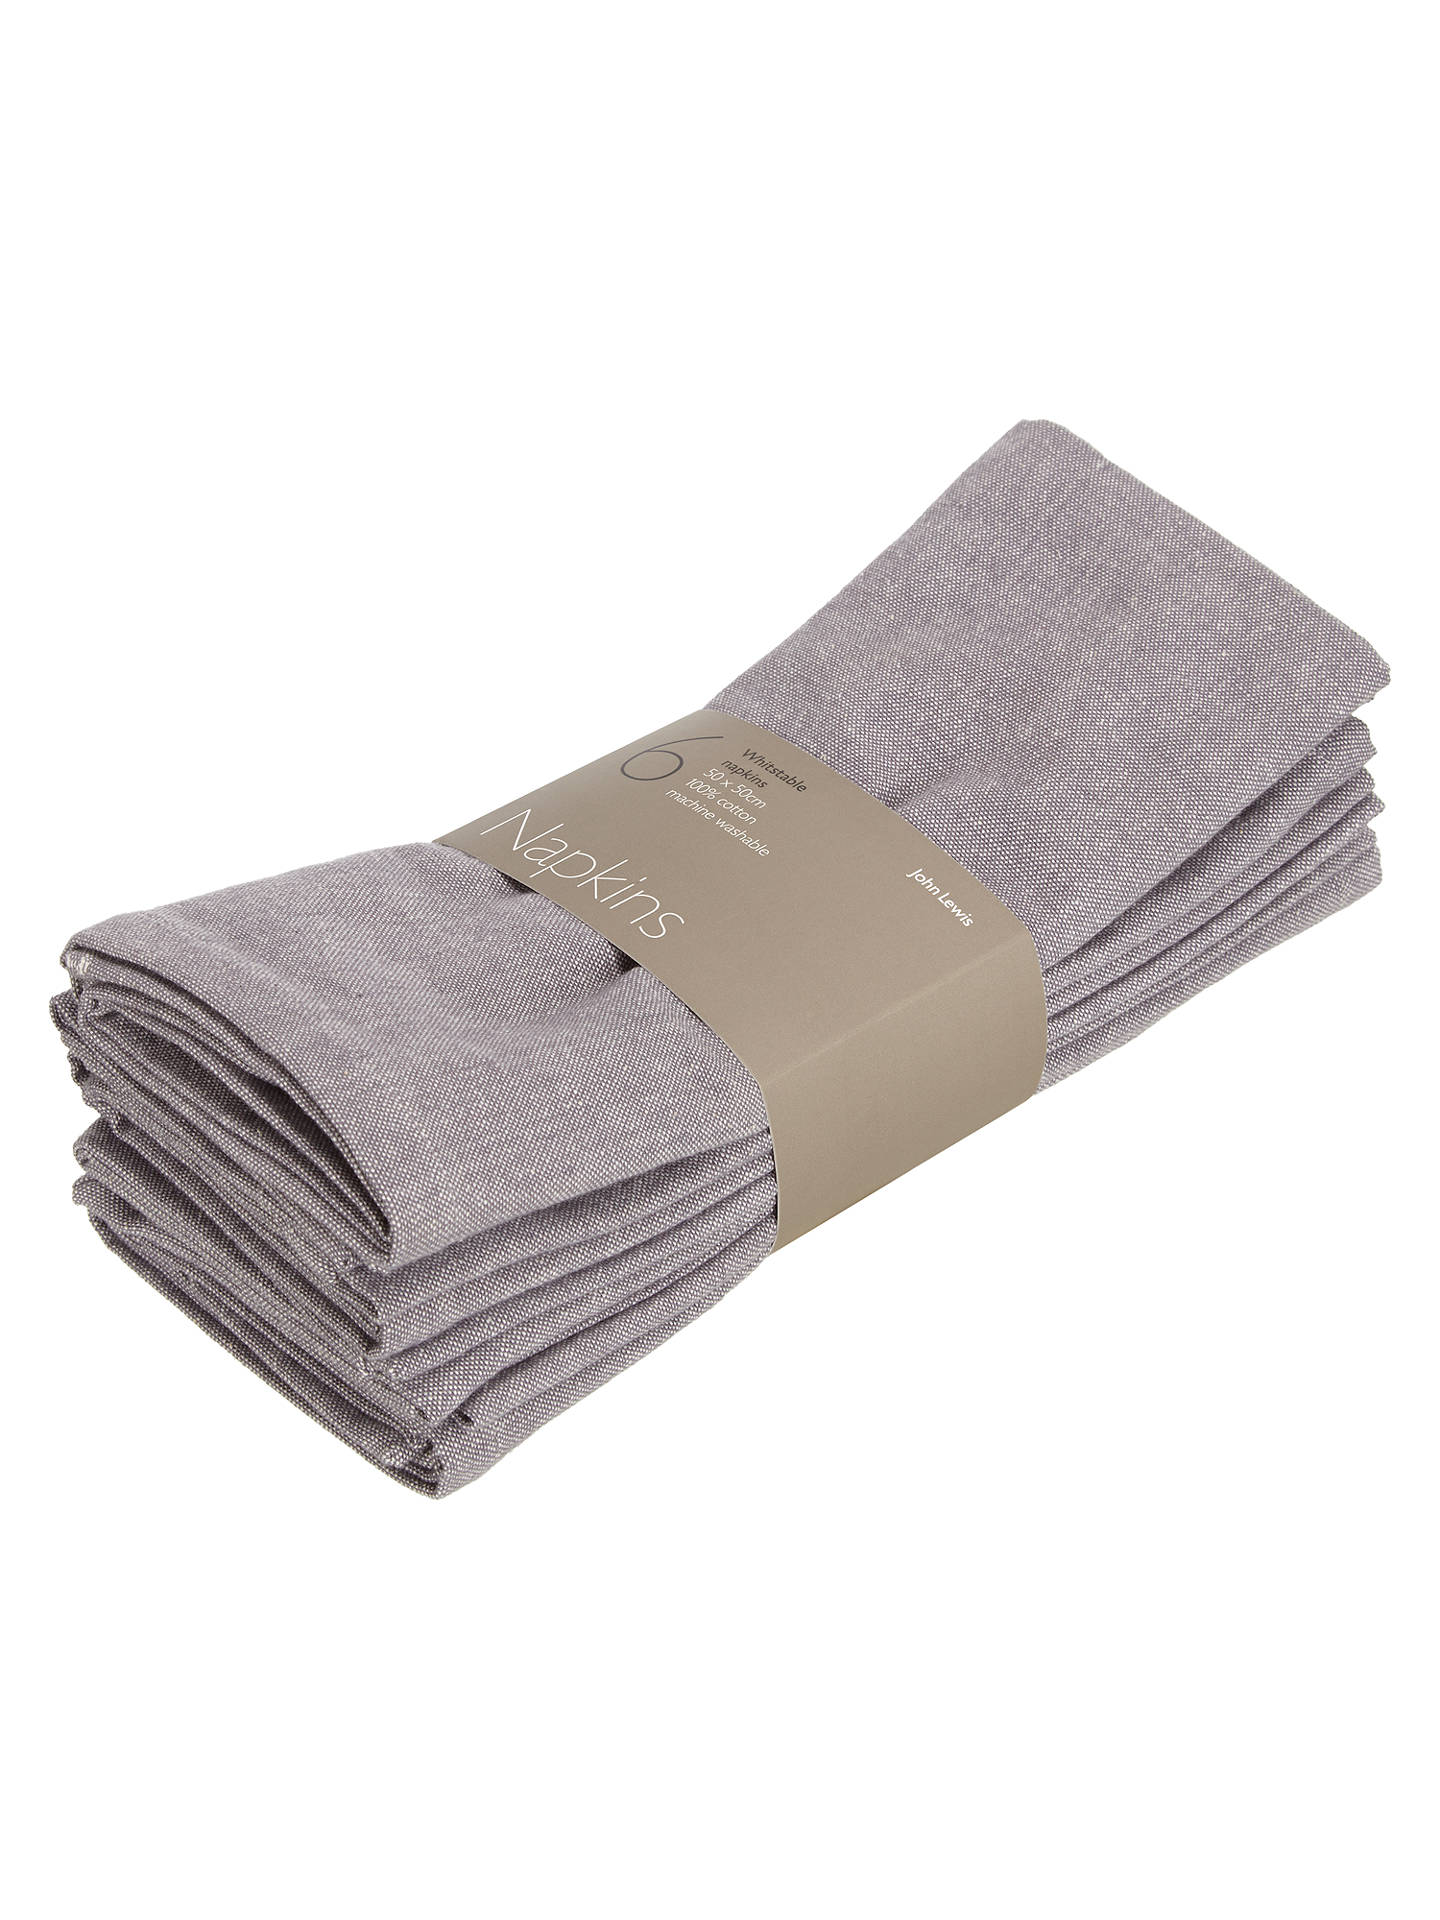 BuyJohn Lewis & Partners Whitstable Napkins, Set of 6, Steel Online at johnlewis.com